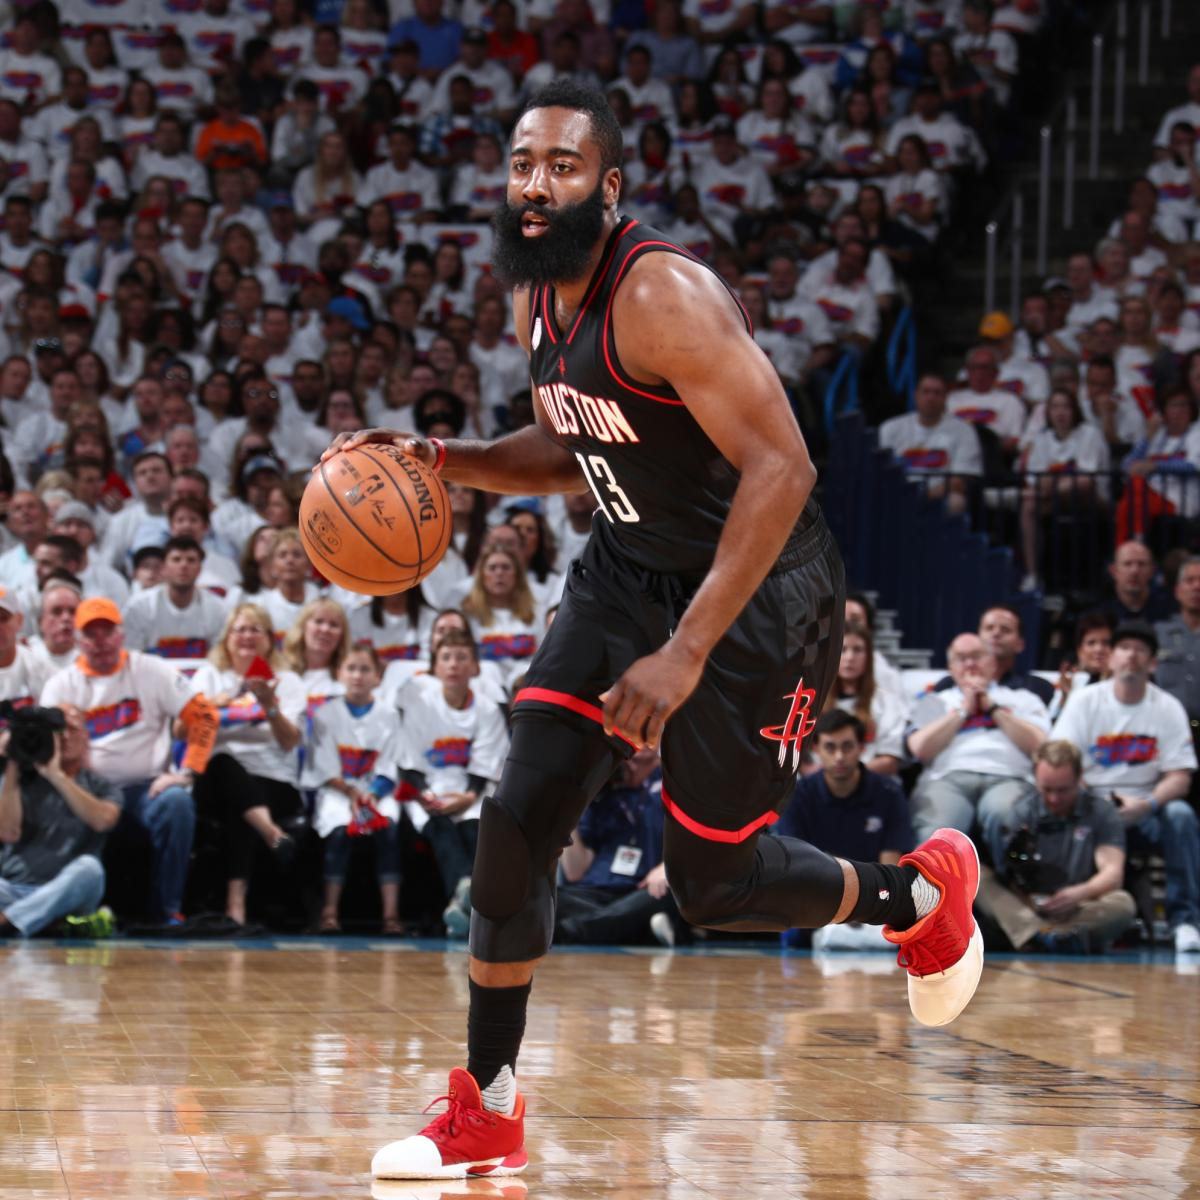 James Harden Injury Report: James Harden Reveals Ankle Injury After Rockets' Game 4